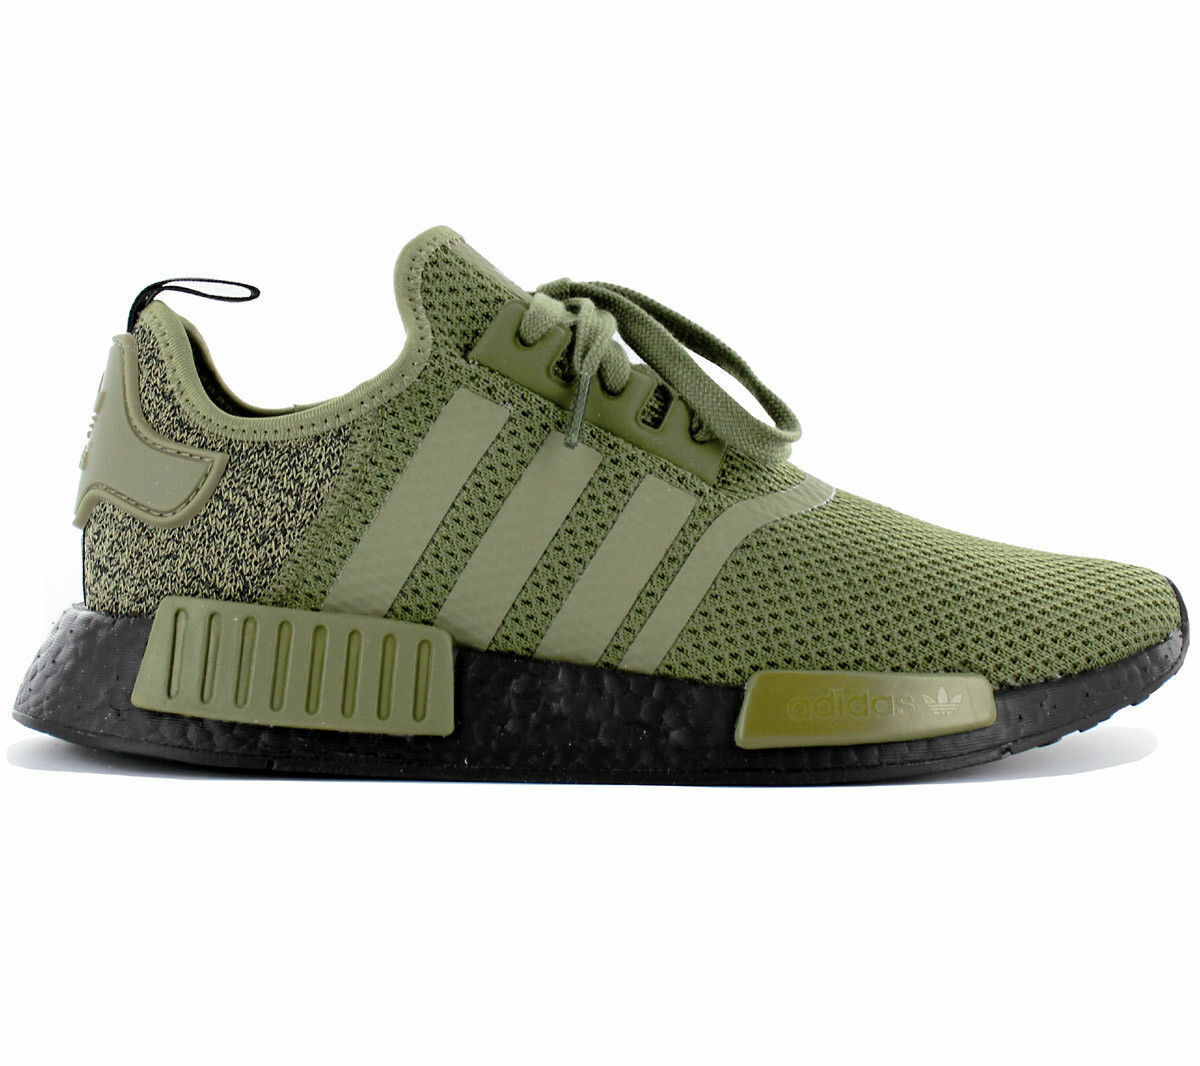 Adidas Originals NMD R1 AQ1246 Olive Green Black EU Exclusive Sneakers